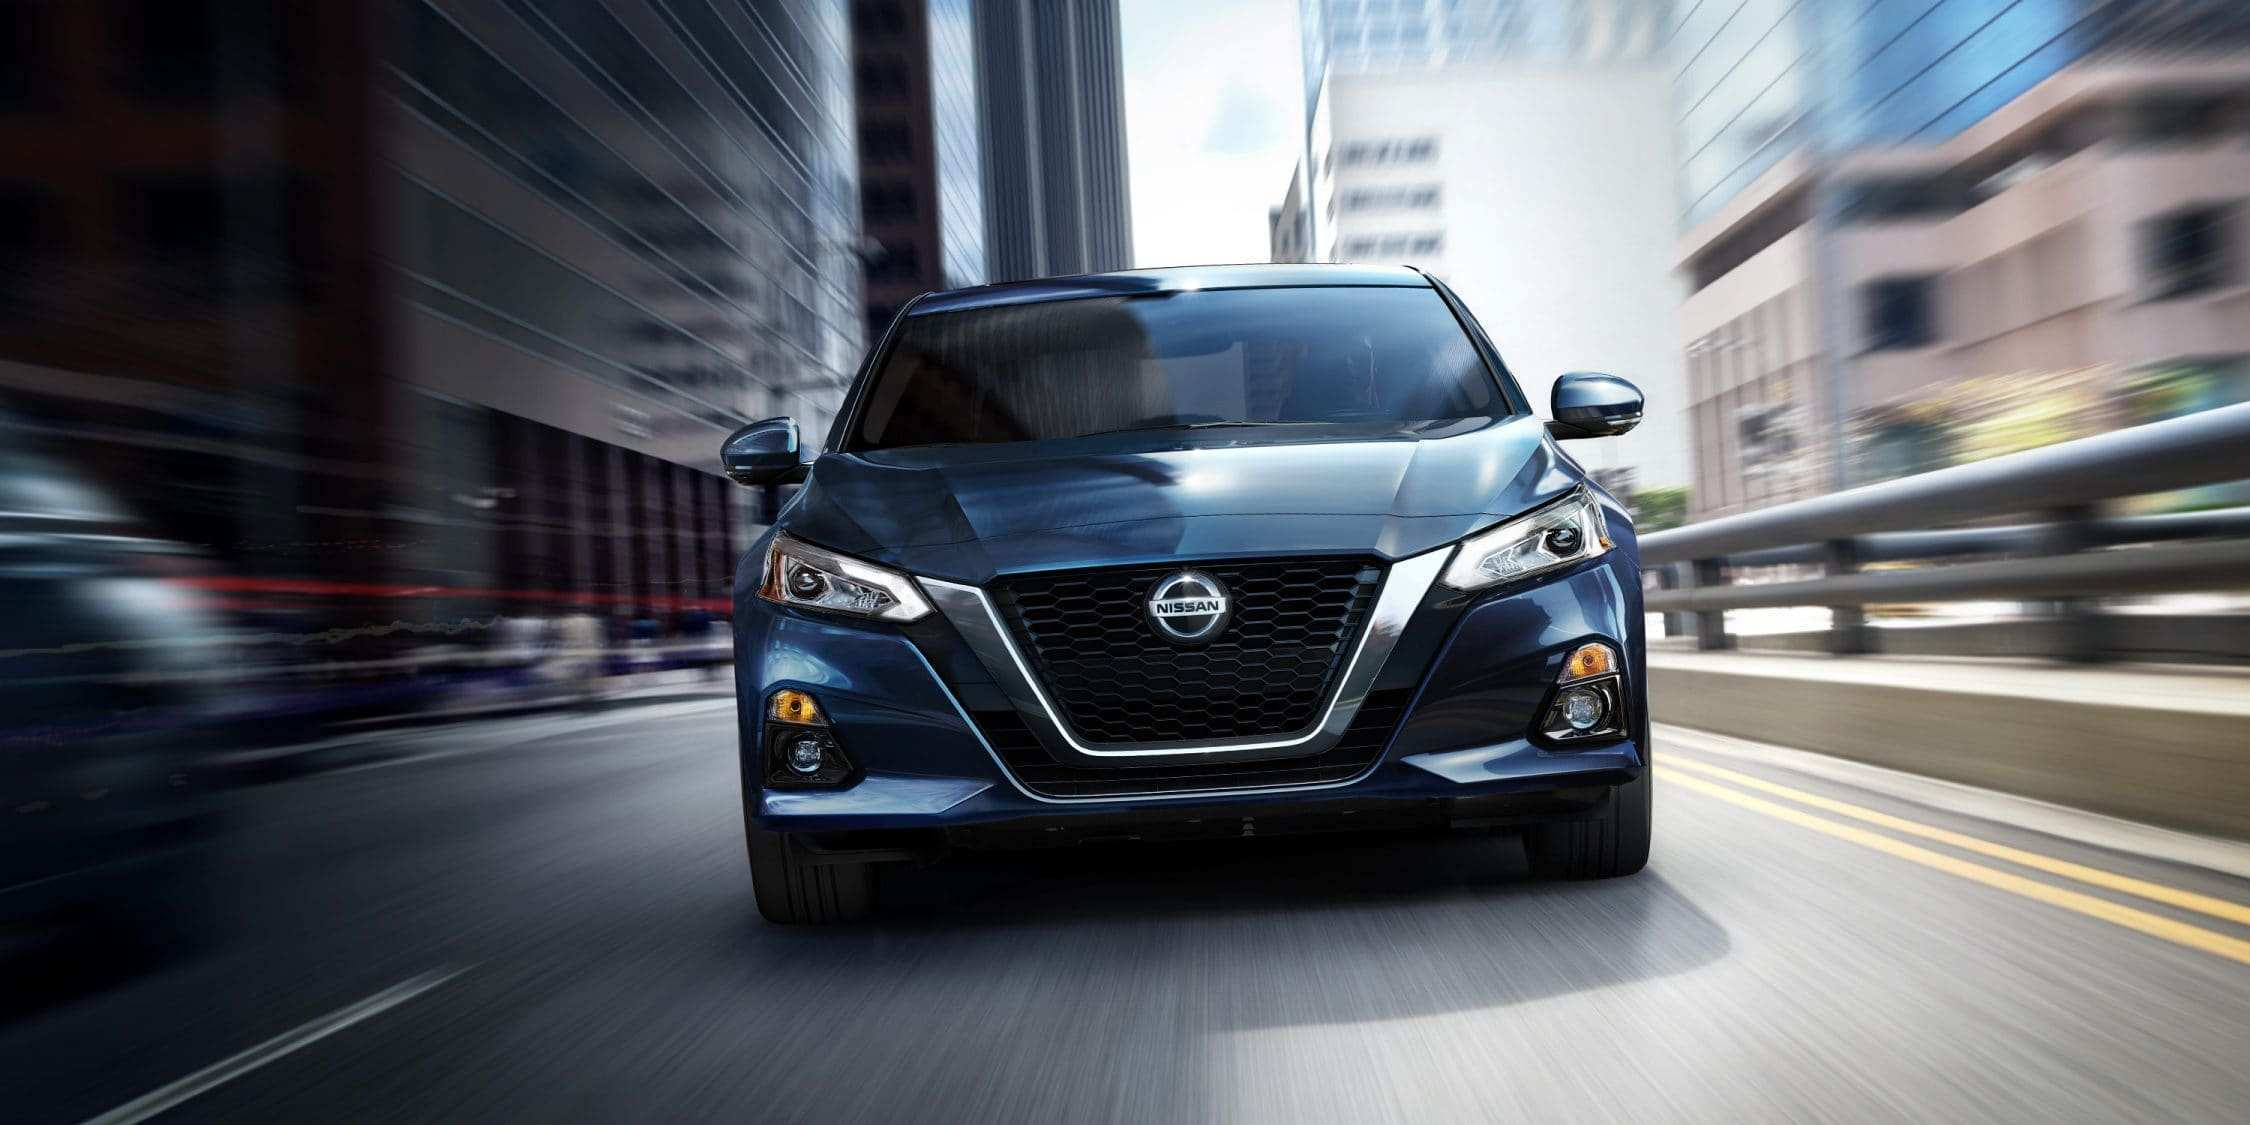 73 The Best 2019 Nissan Altima Engine Pictures